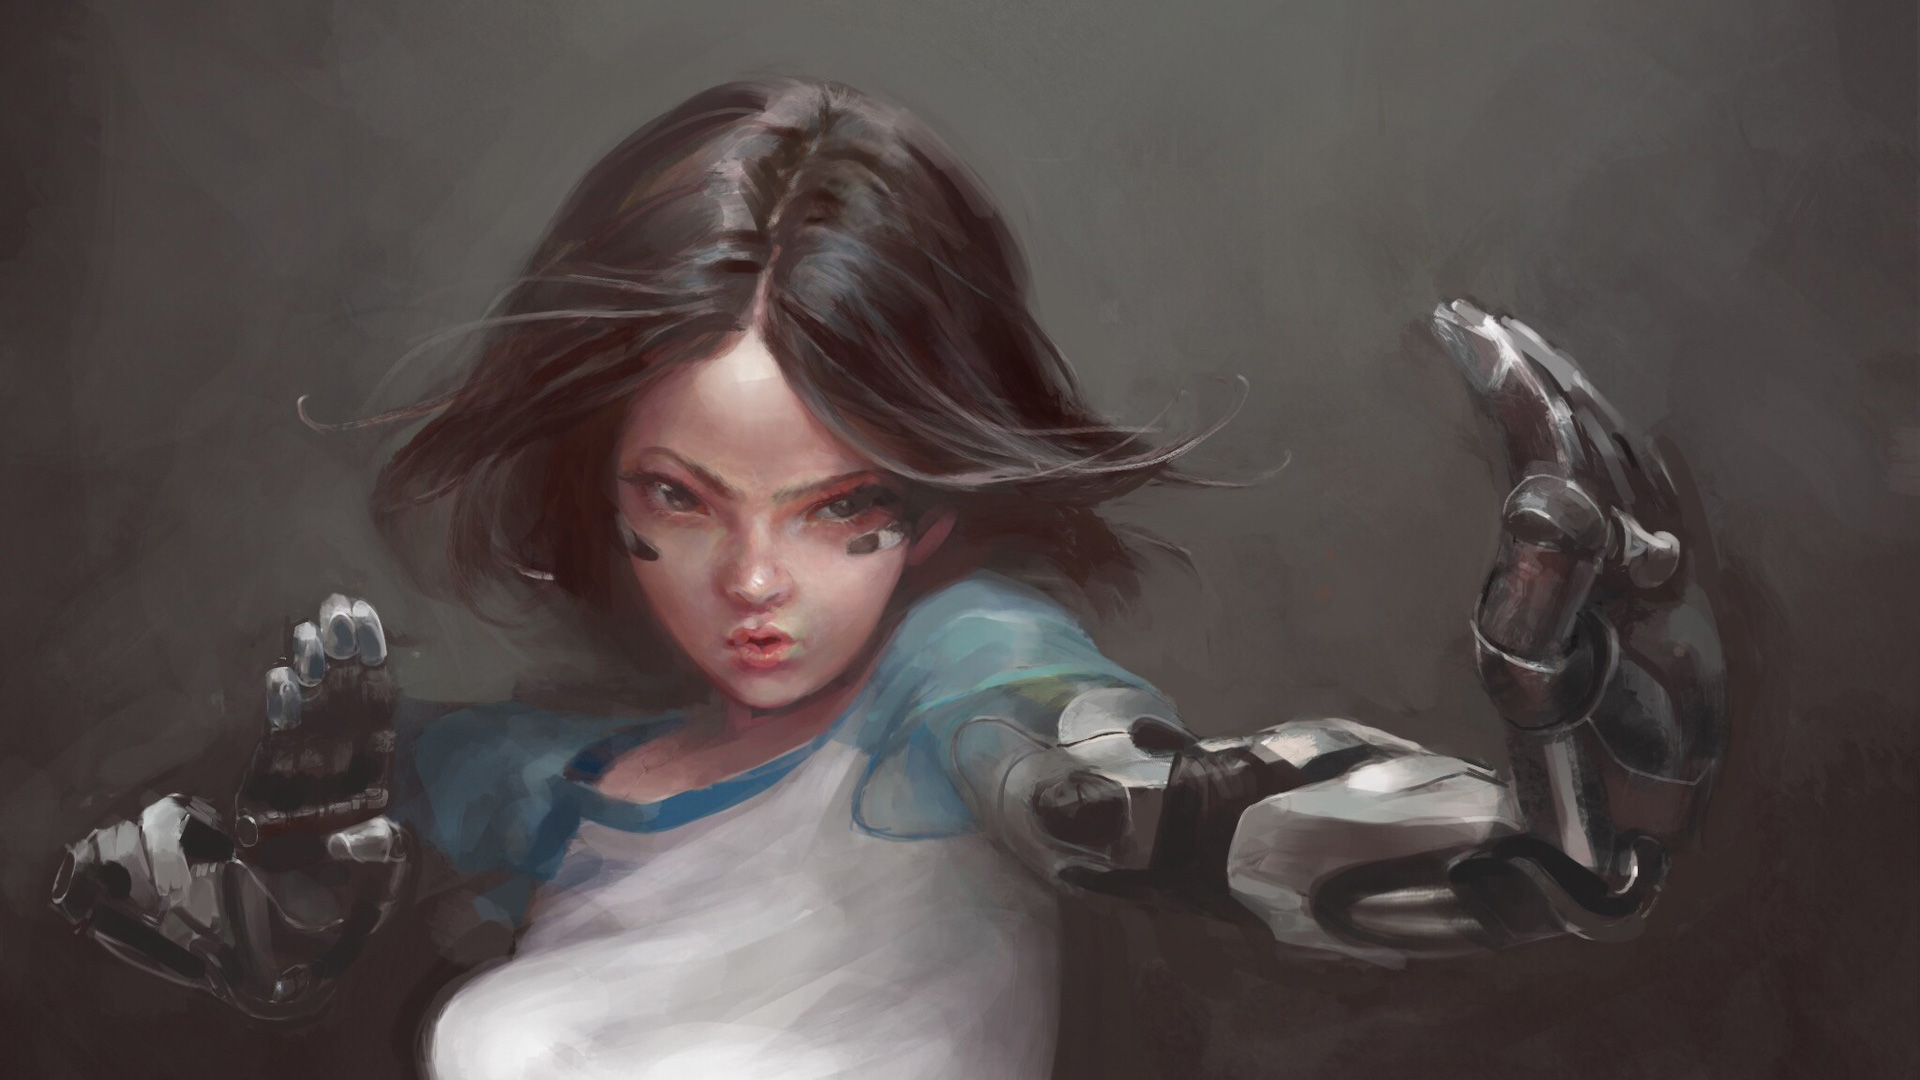 Alita Battle Angel >> Alita Battle Angel Art, HD Movies, 4k Wallpapers, Images, Backgrounds, Photos and Pictures